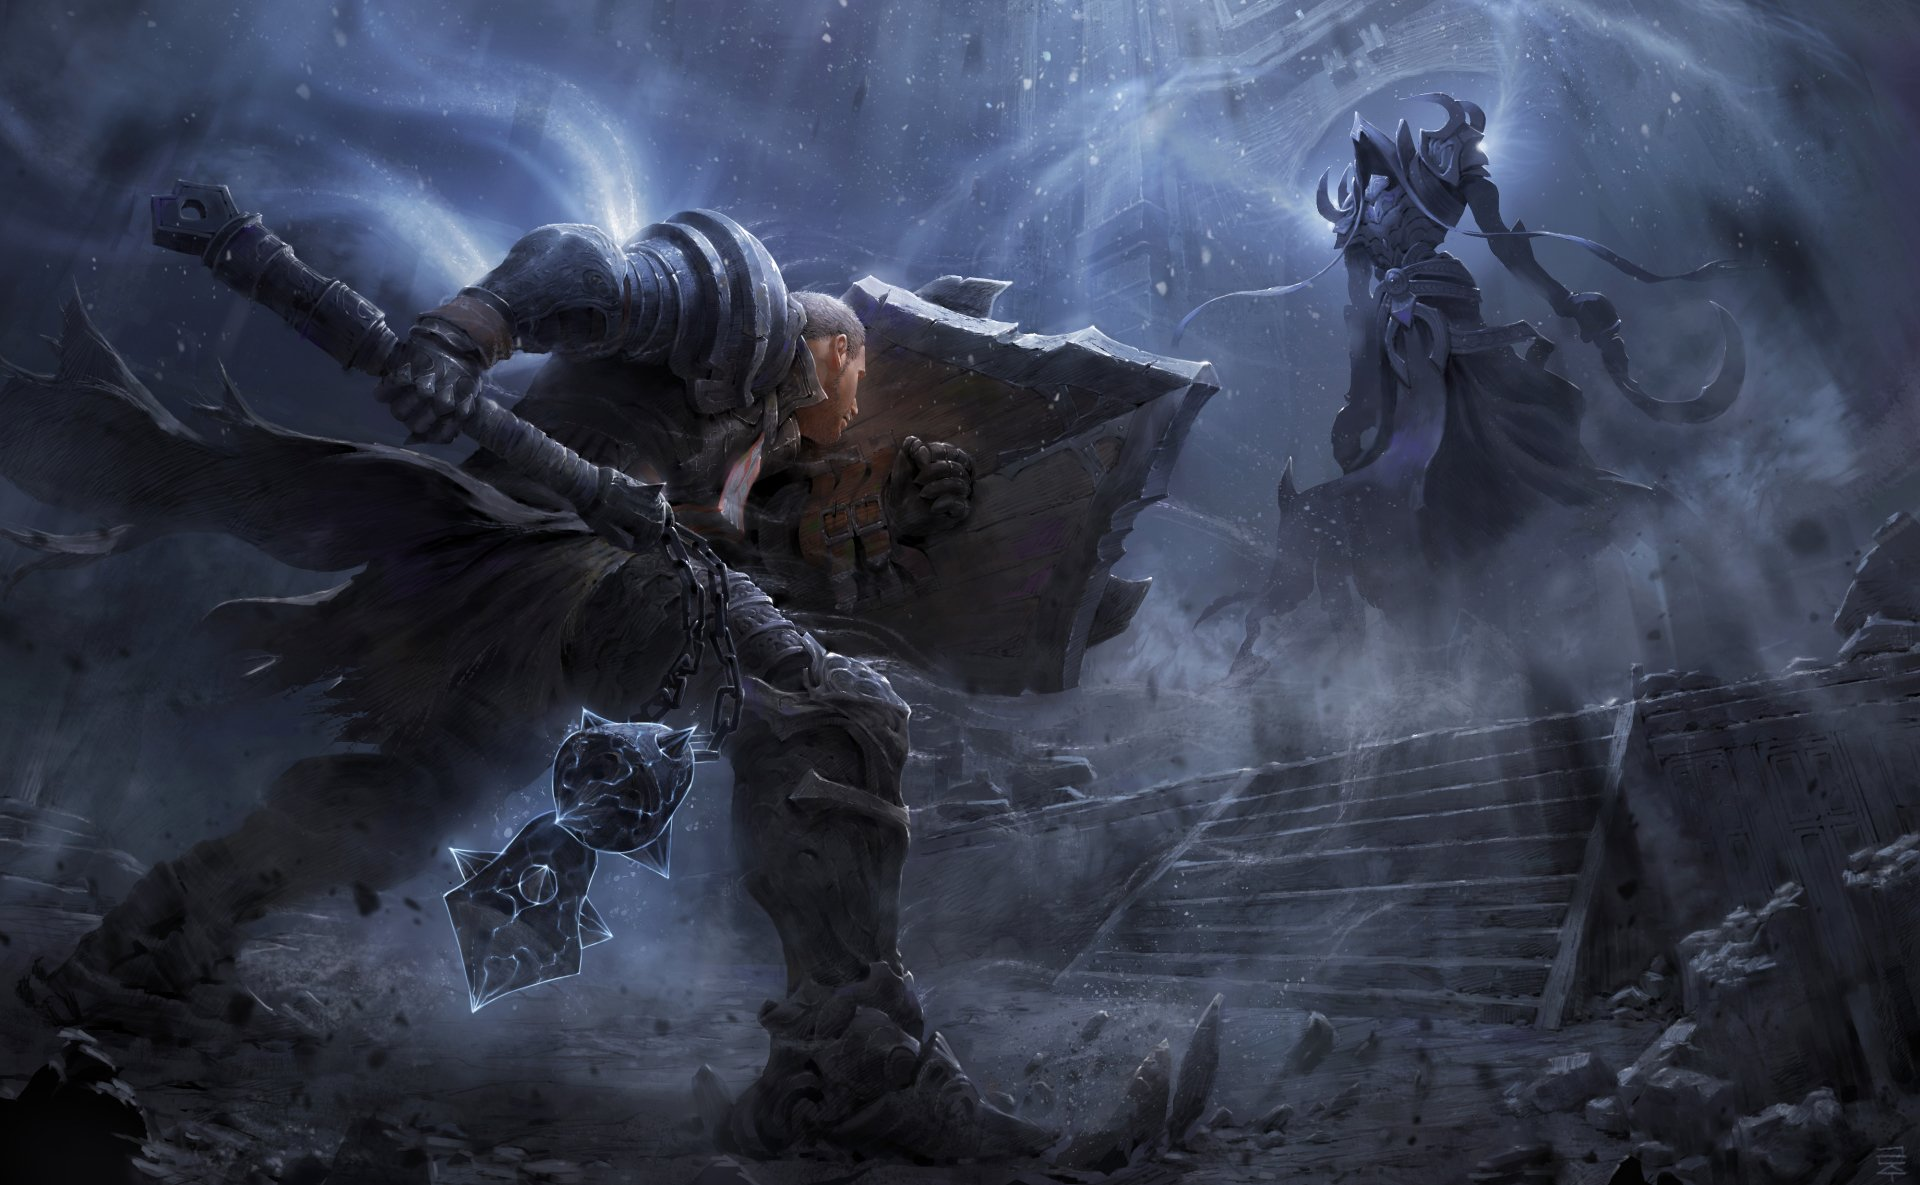 Diablo III: Reaper Of Souls 4k Ultra HD Wallpaper and ...